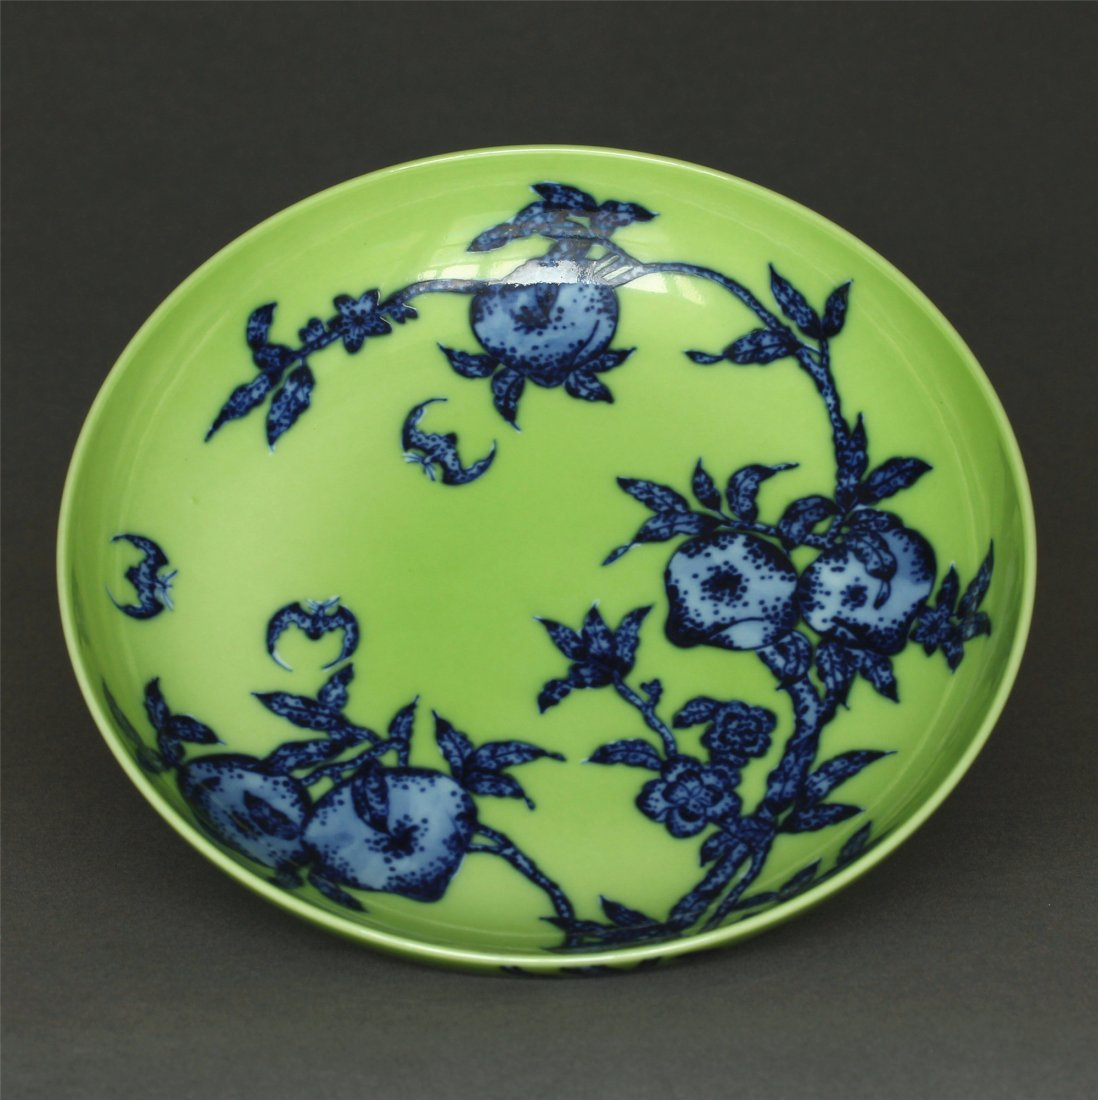 Blue & white and green glaze porcelain  plate of Qing